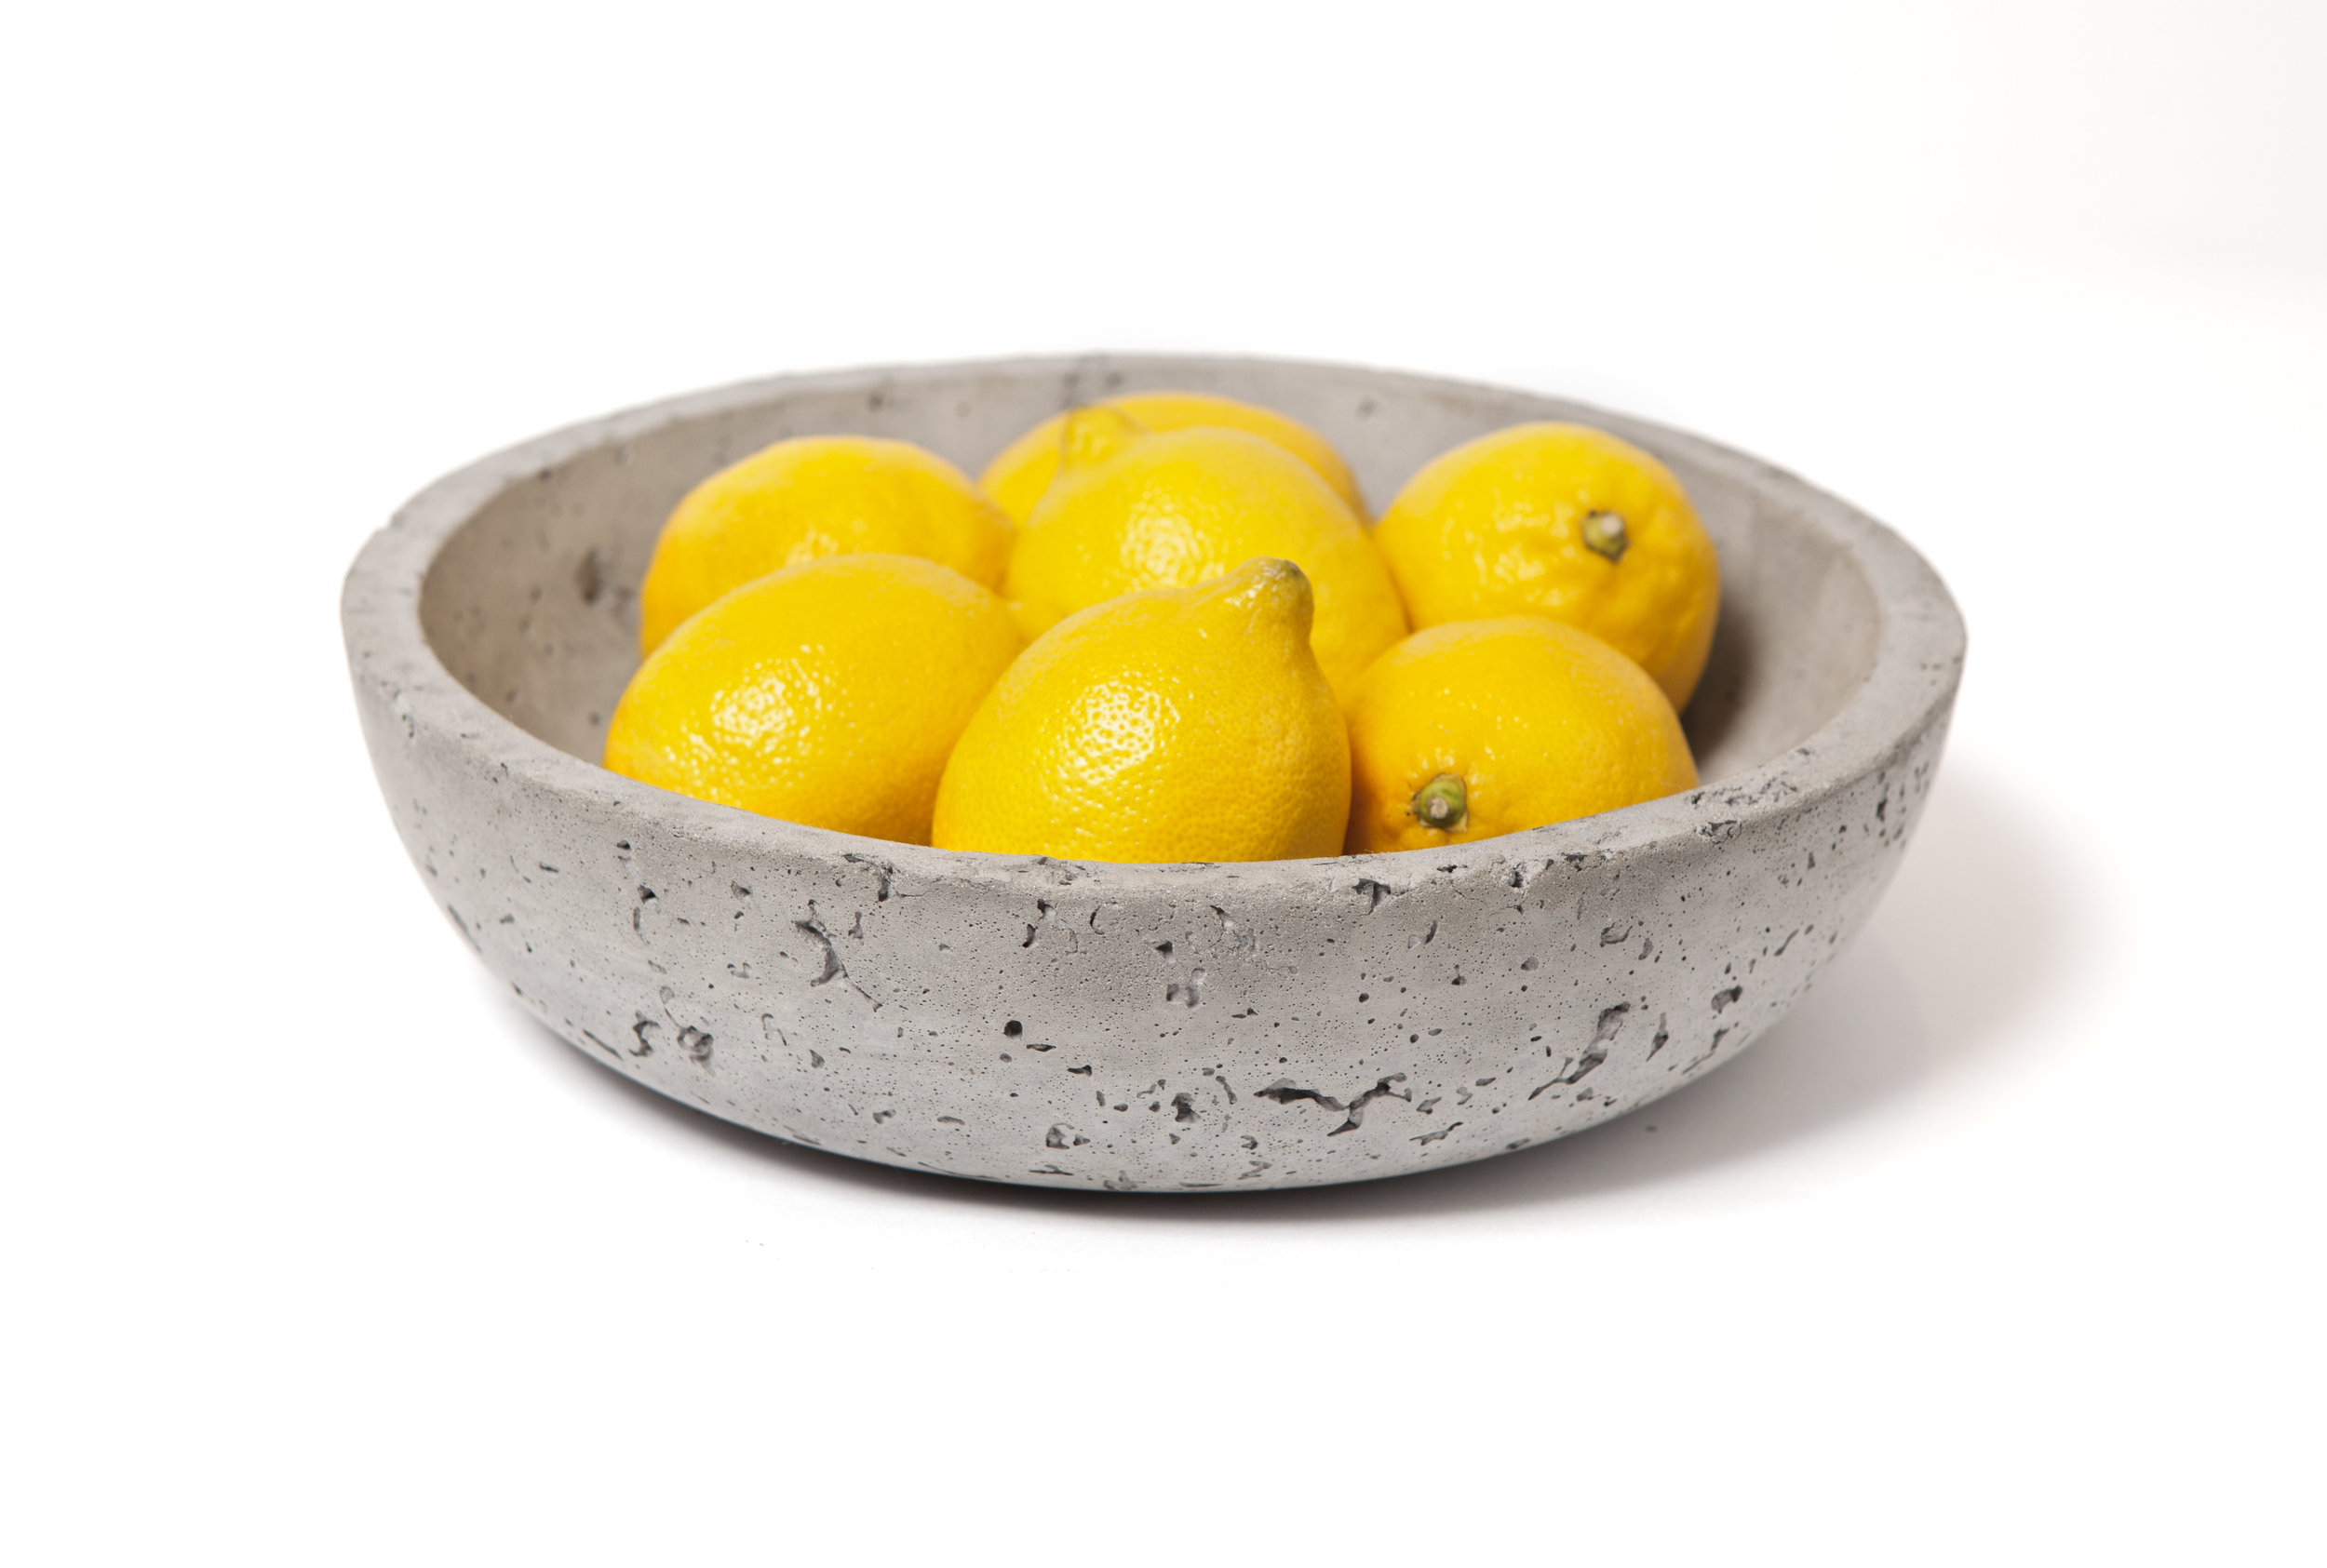 _MG_5410 (Grey Fruit Bowl - with lemons).jpg